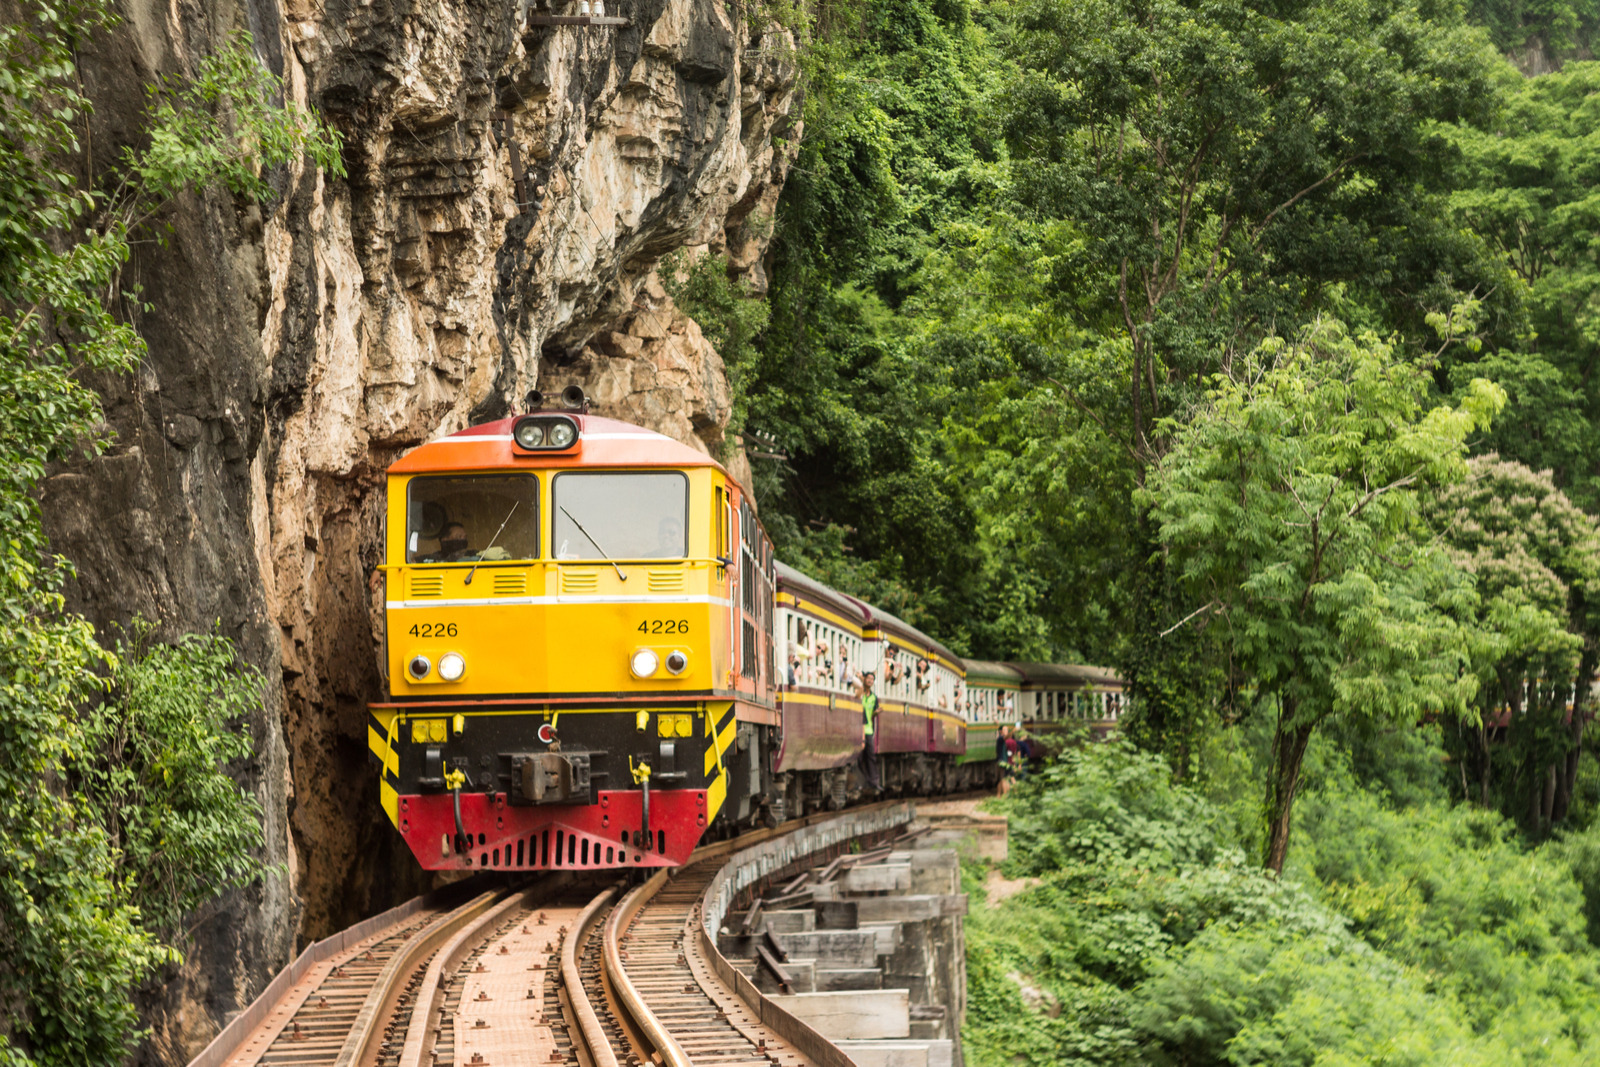 Kanchanaburi Day Tour - Khao Pun Caves, Death Railway, and more!